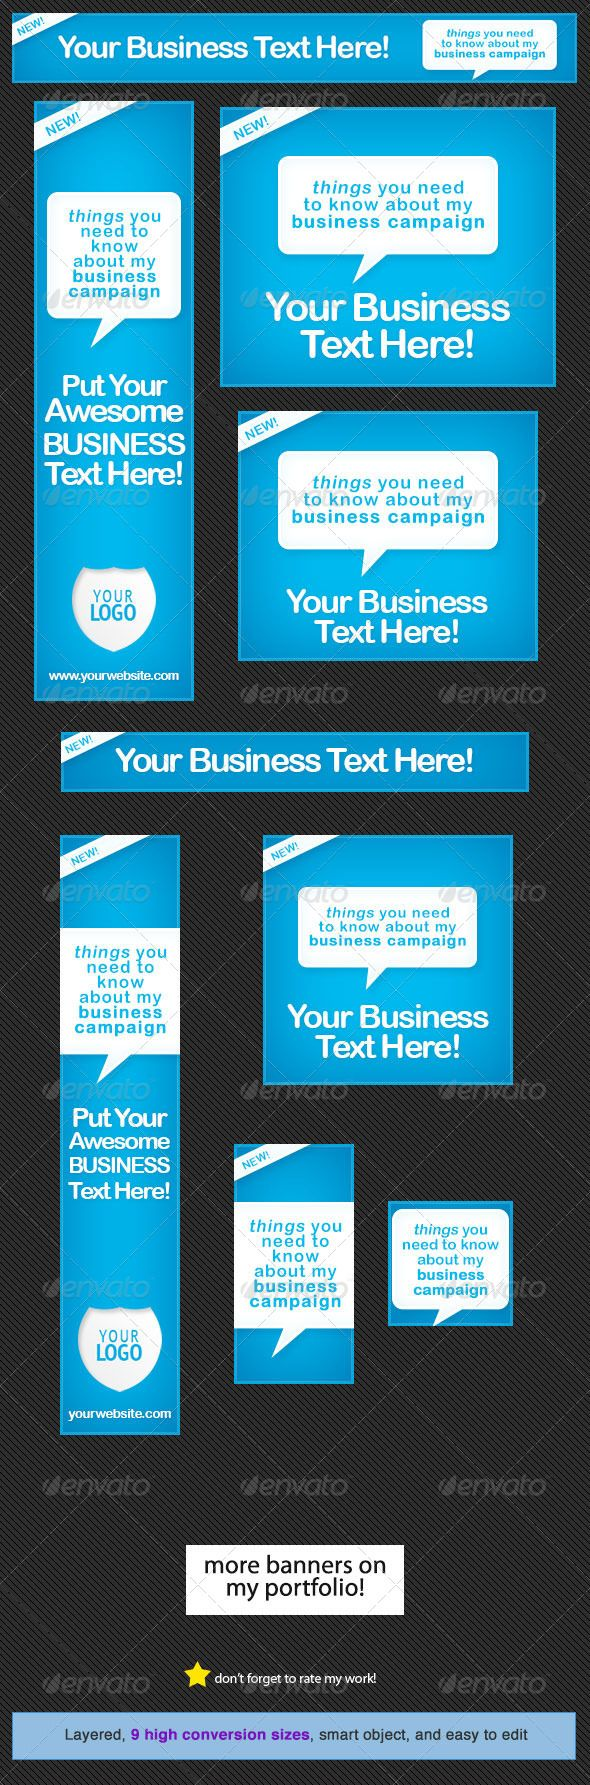 Design google banner ads - Neat Blue Web Banner Design